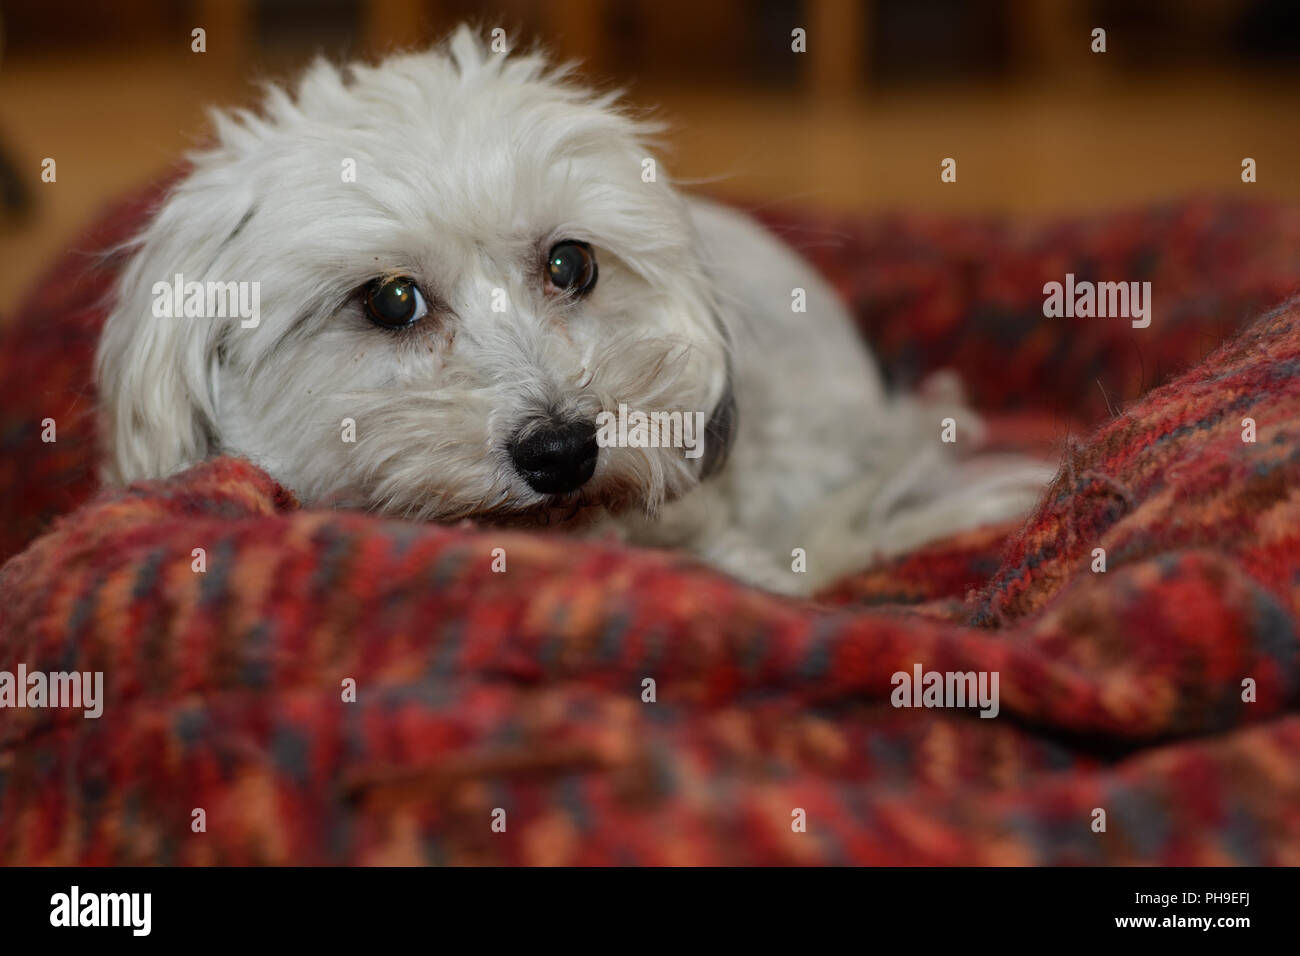 White dog in his big dog bed - Havanese - Stock Image